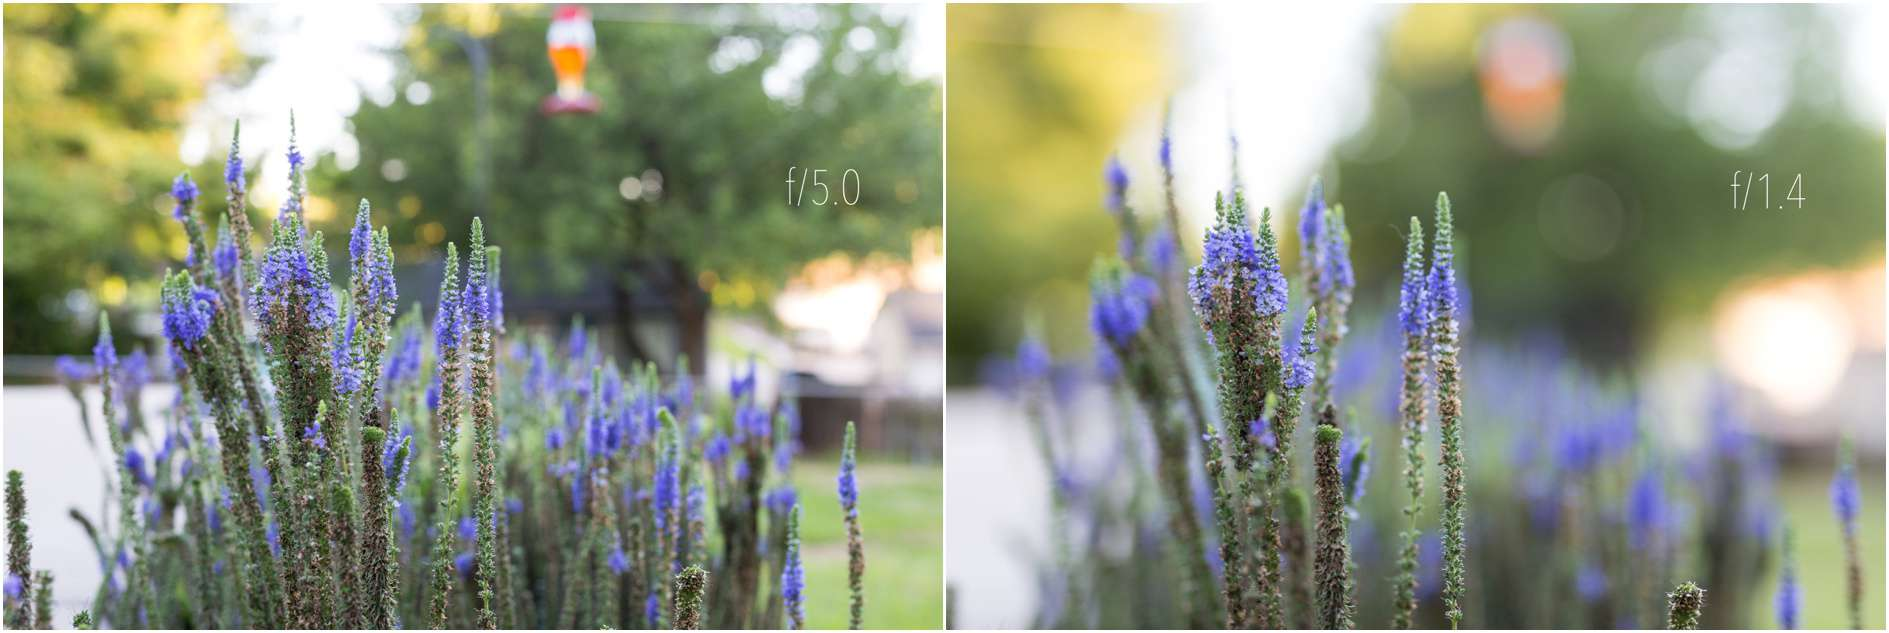 Image result for shallow depth of field vs deep